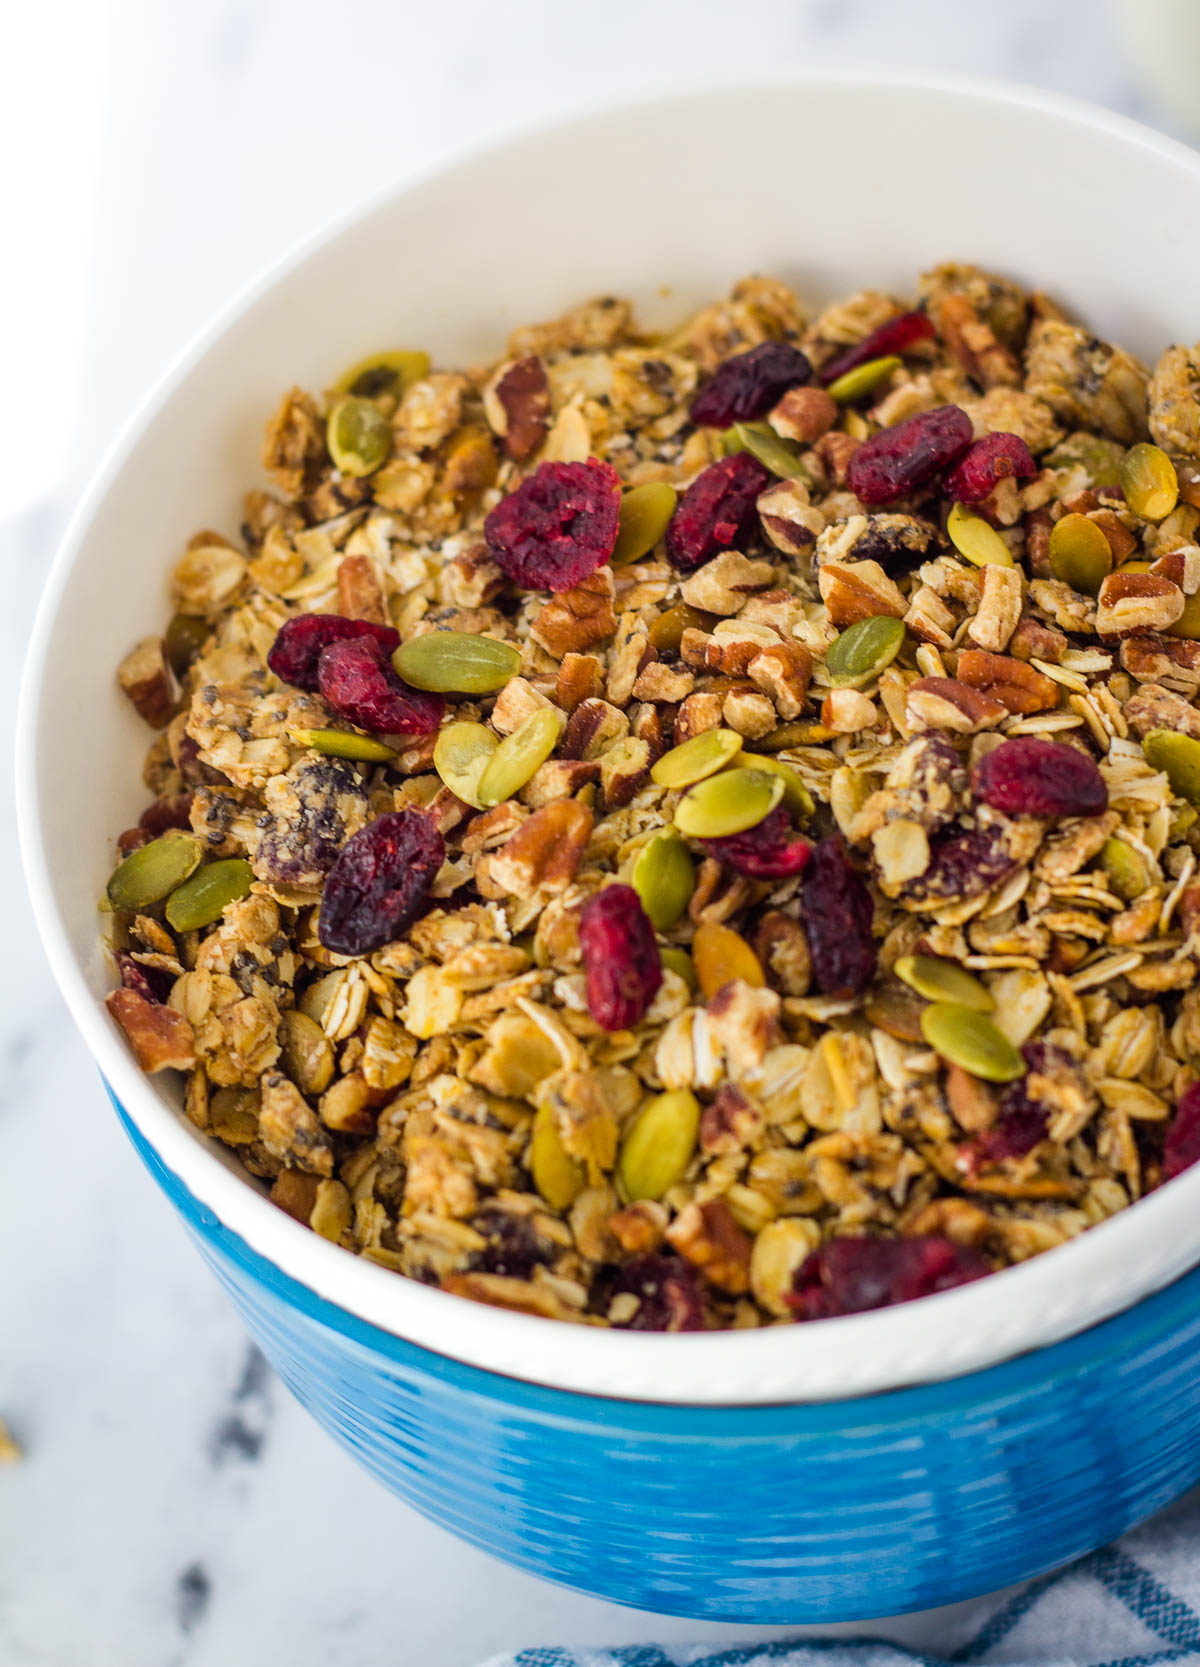 Granola with cranberries, and pumpkin seeds in blue and white stacked bowls.